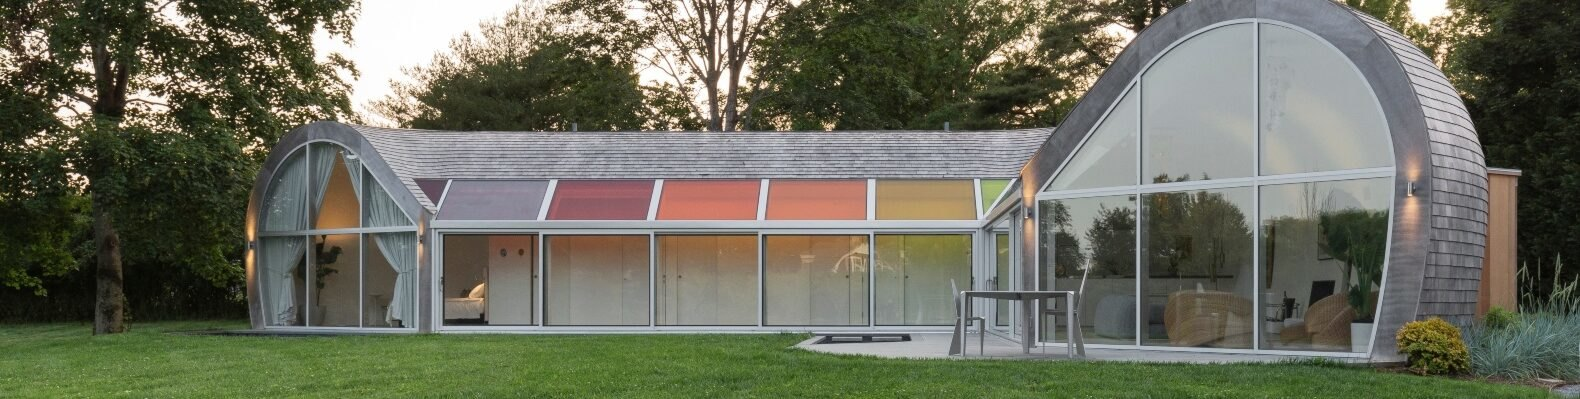 curved home with multicolored skylights